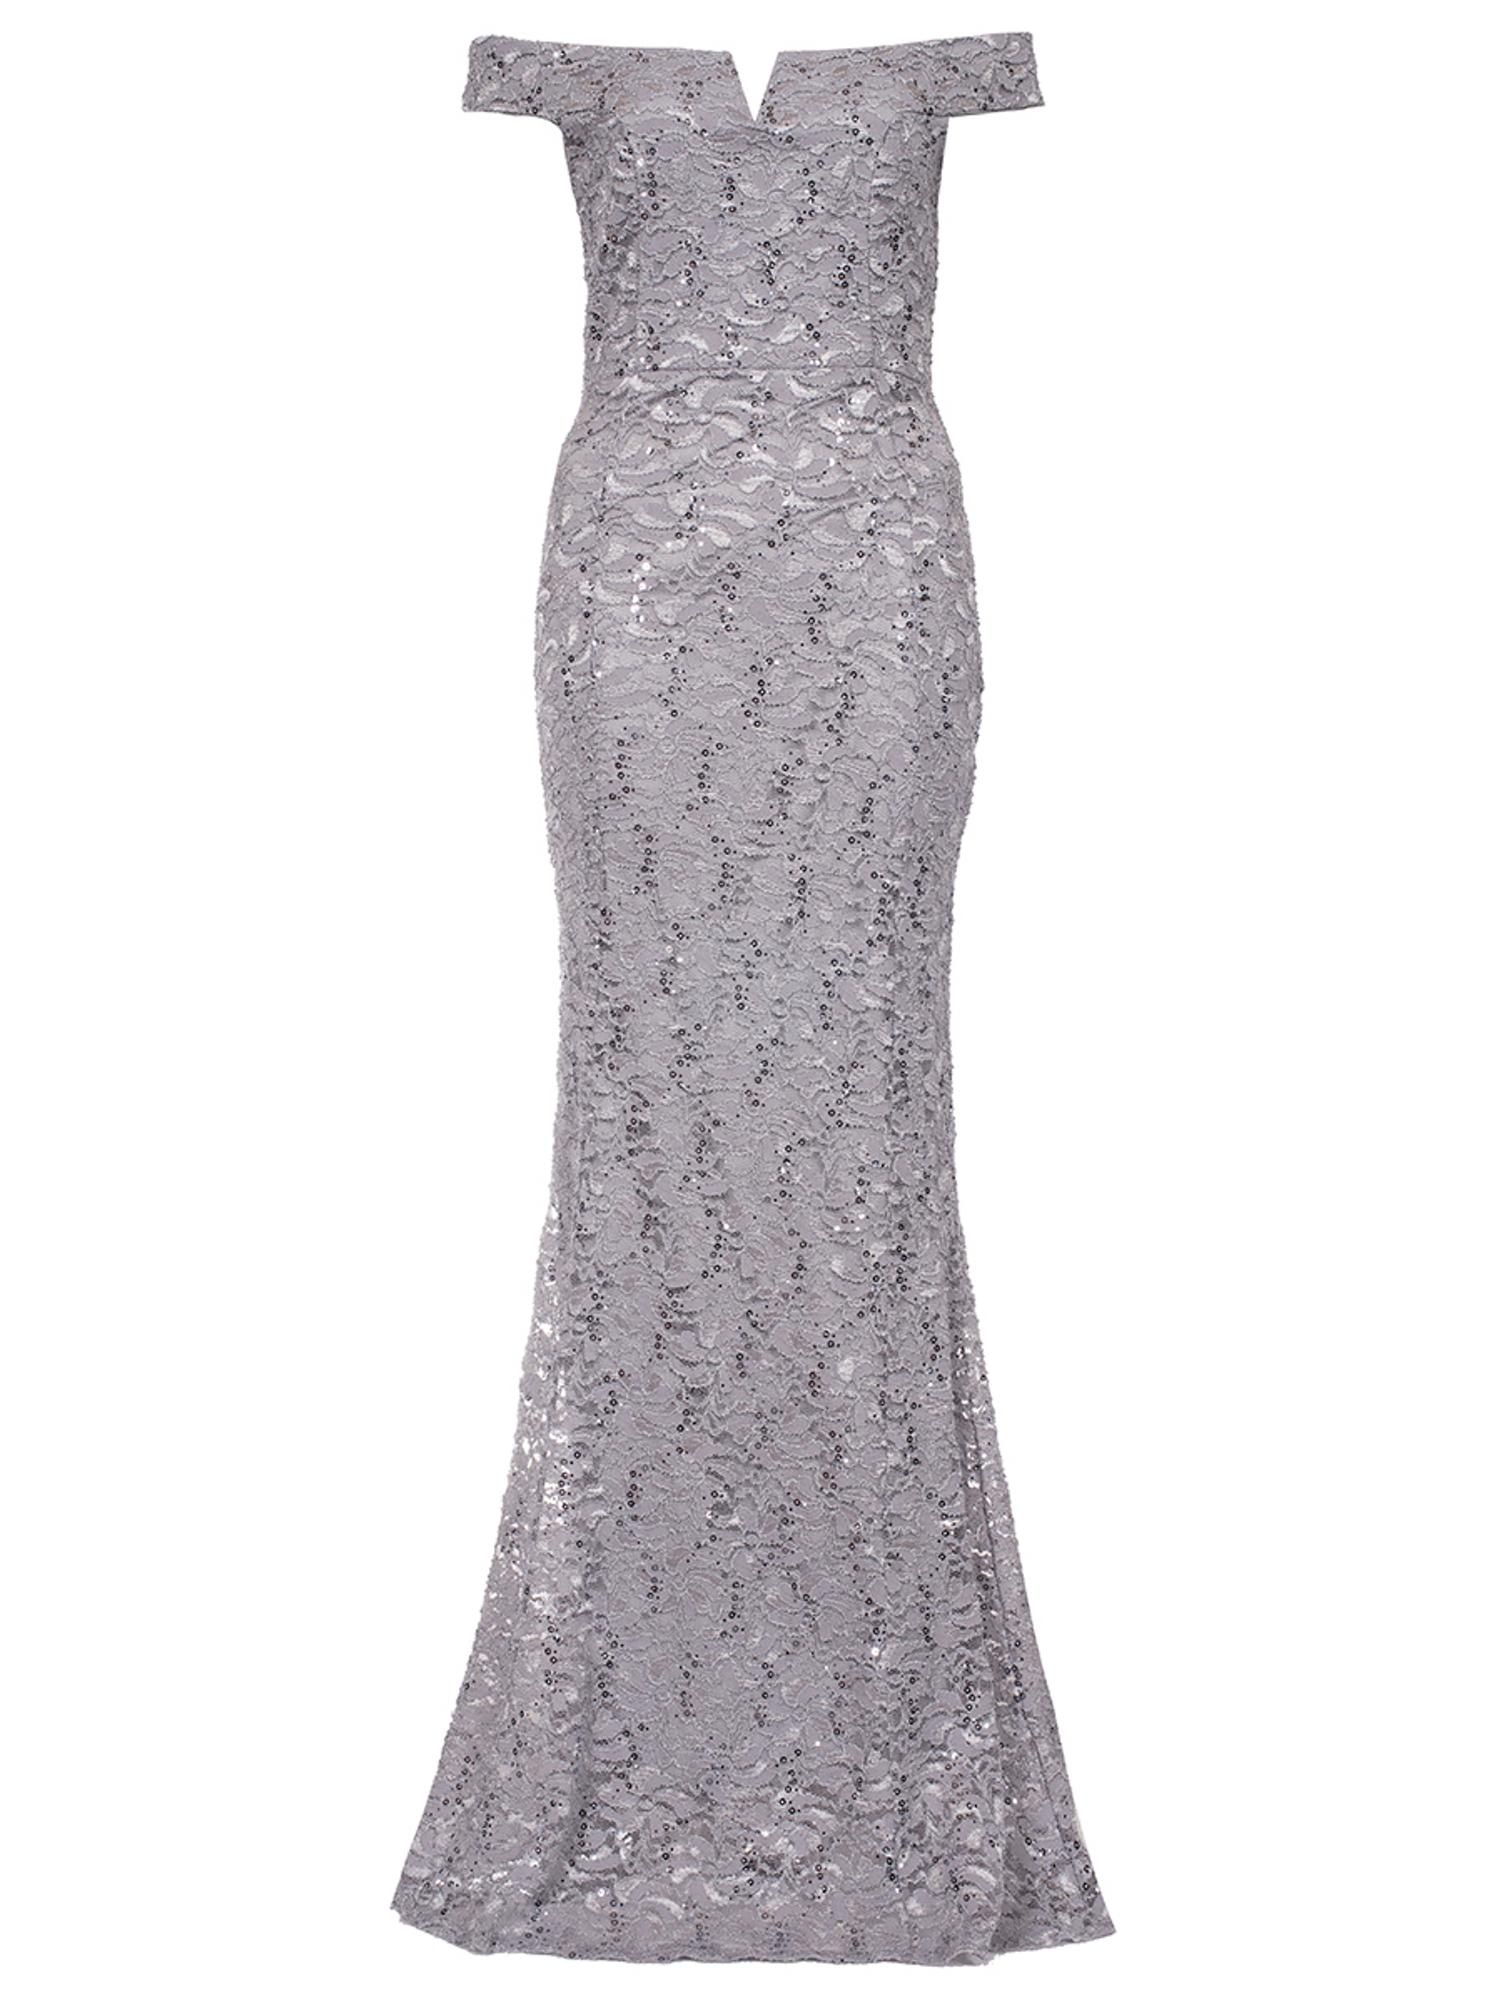 0a9b385a Take a closer look at the Quiz Silver Grey Sequin Bardot Fishtail Dress at  House of Fraser - your premium department store of choice.